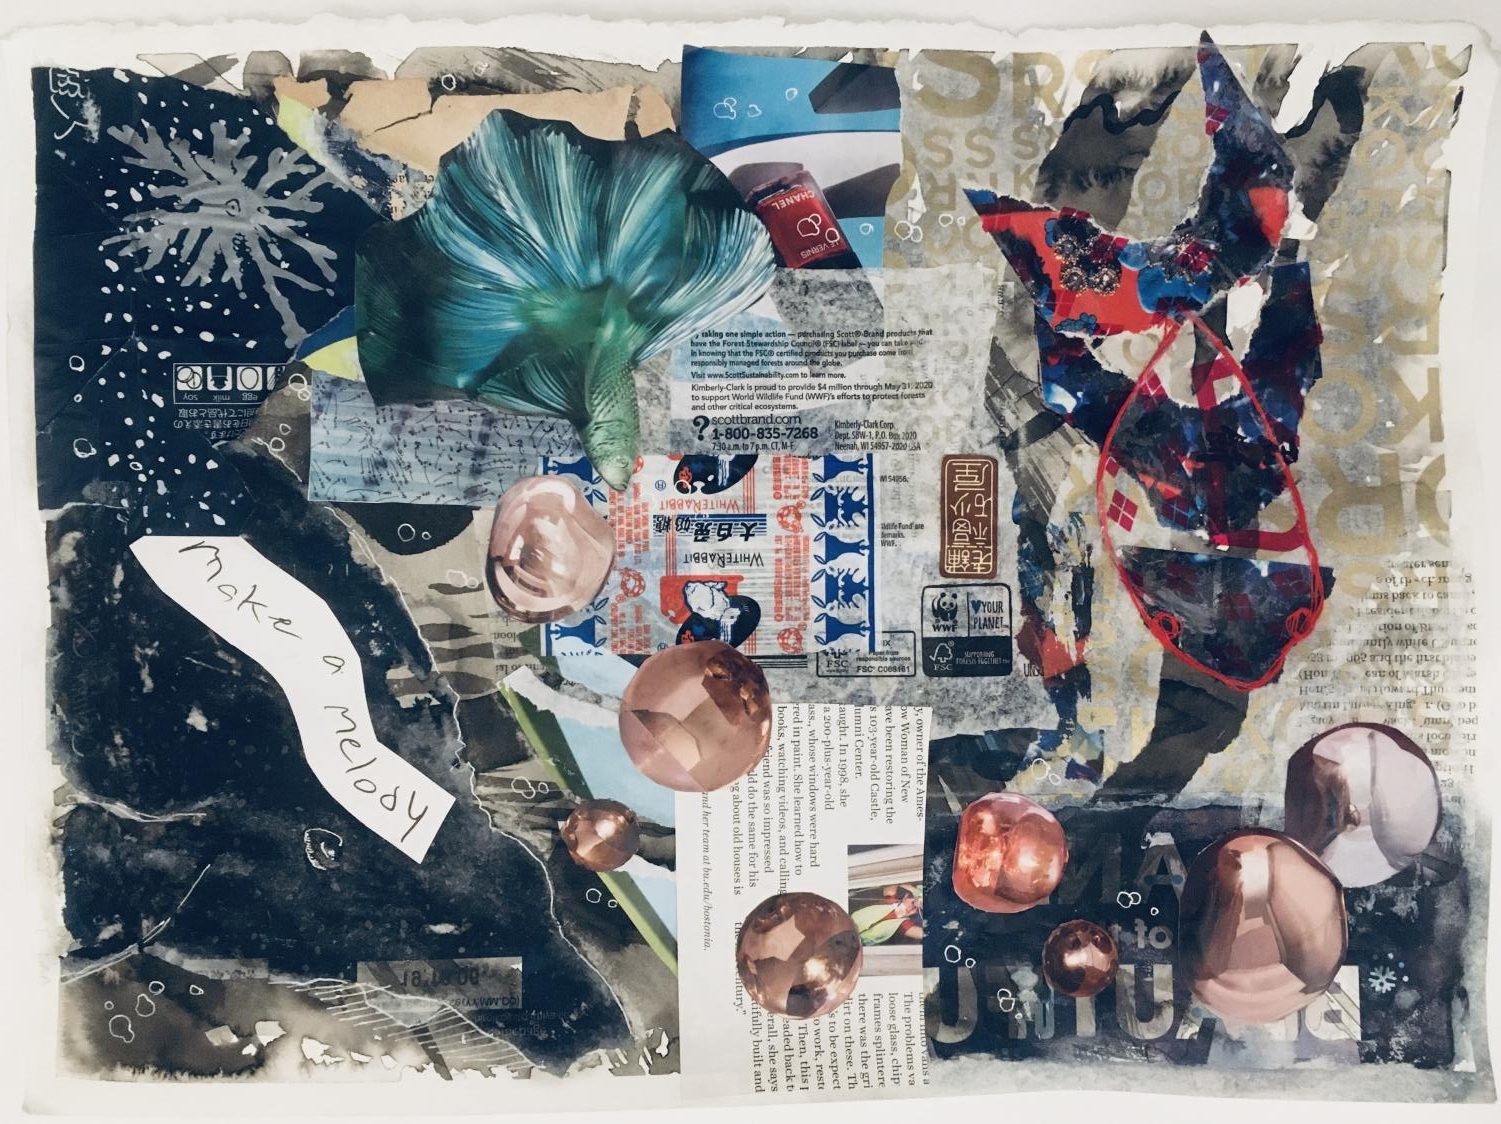 Sato has recently started experimenting with collages. She overlaps images she finds in magazines with text, including Chinese writing that she handwrites herself.